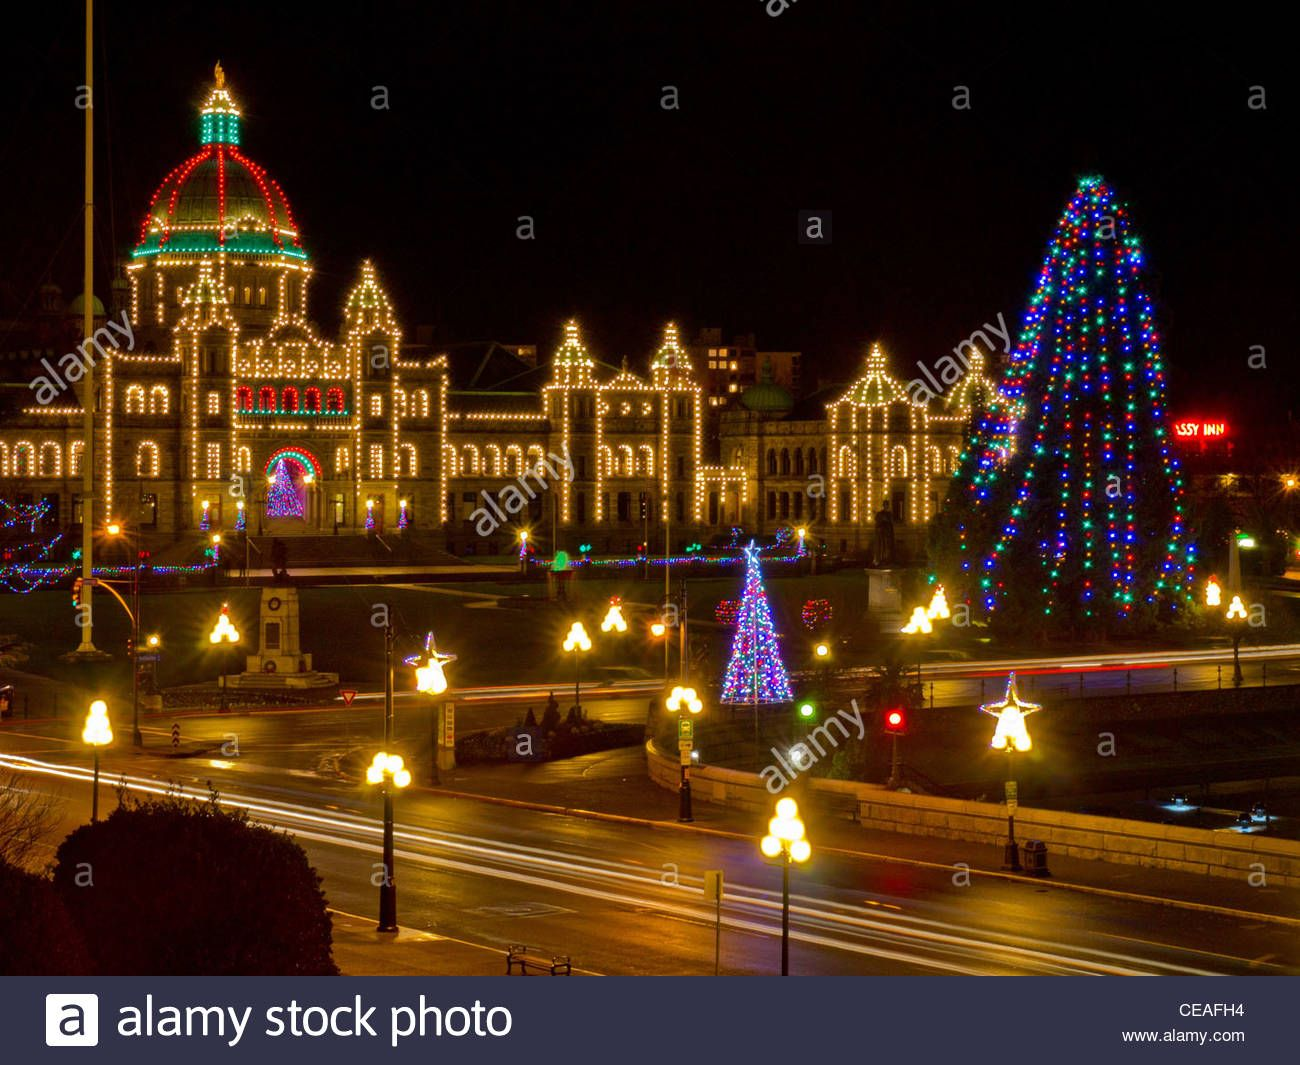 Download This Stock Image Parliament Building Victoria B C Christmas Lights And Decorations Ceafh4 From Alamy S Library Of Christmas Lights Building Photo